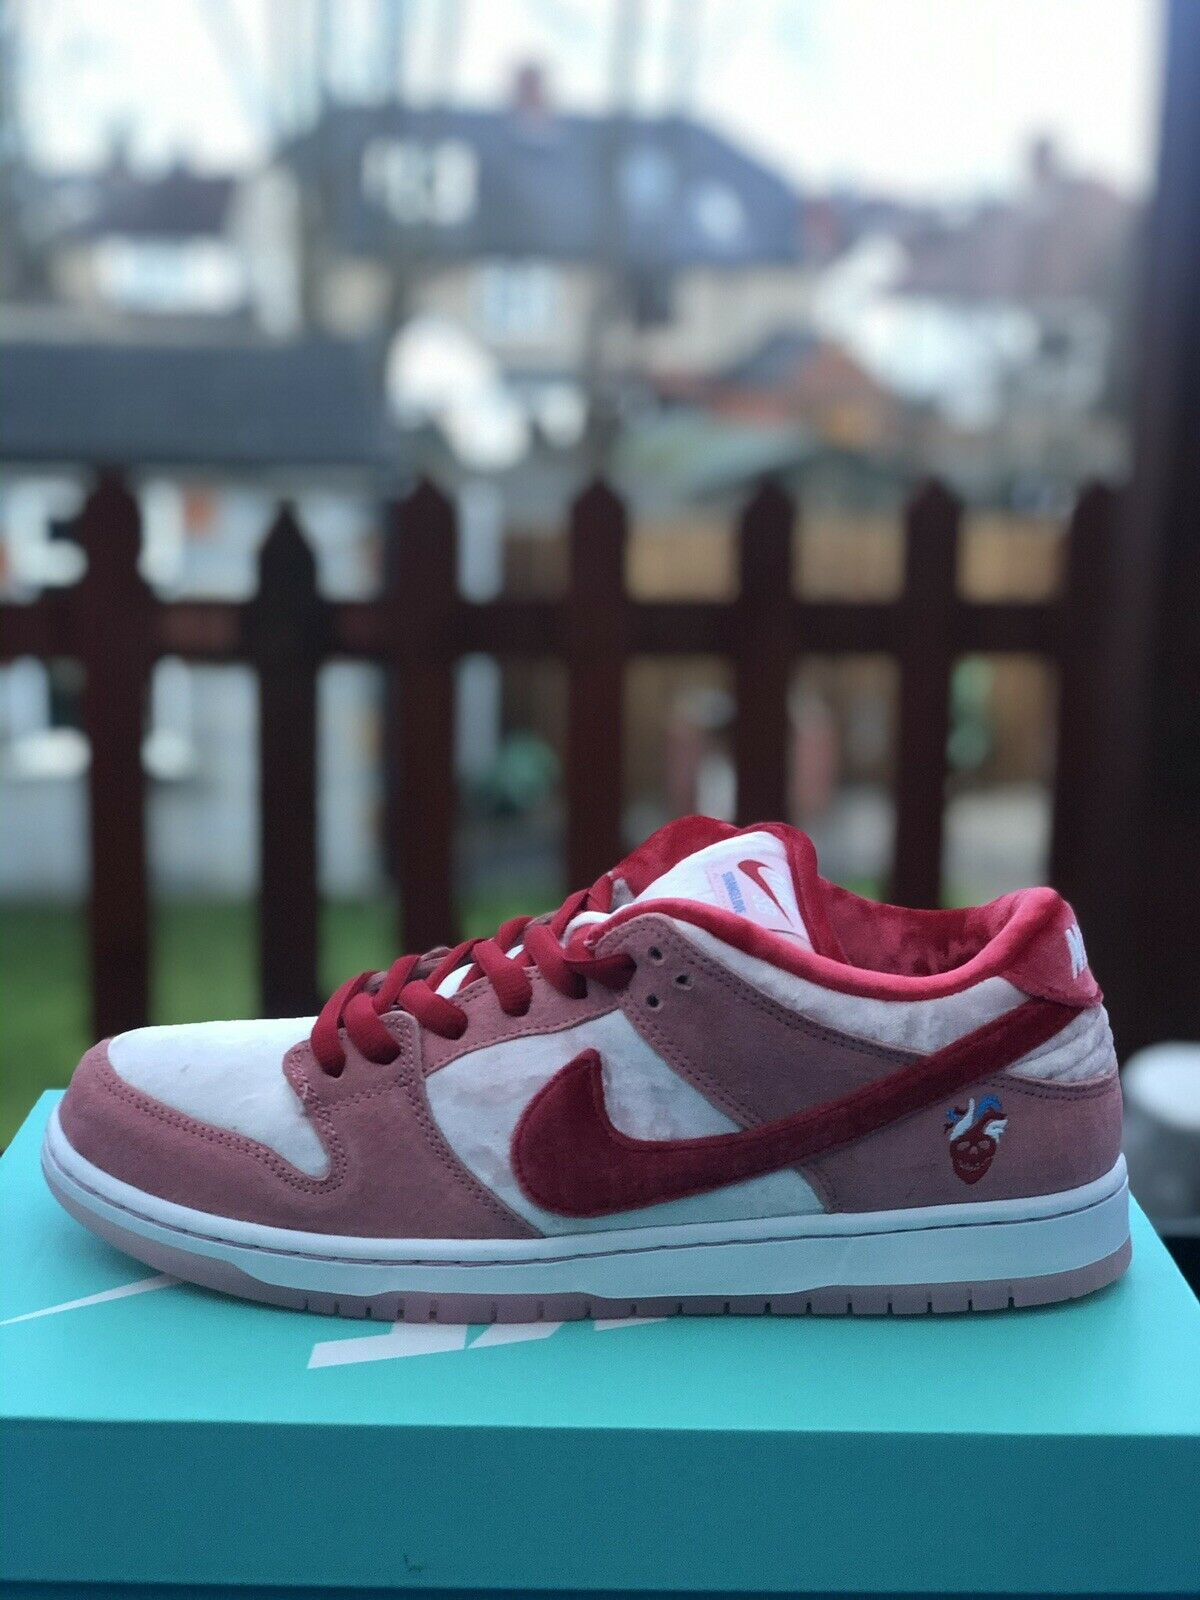 Nike SB Dunk Low StrangeLove Skateboards Regular Box